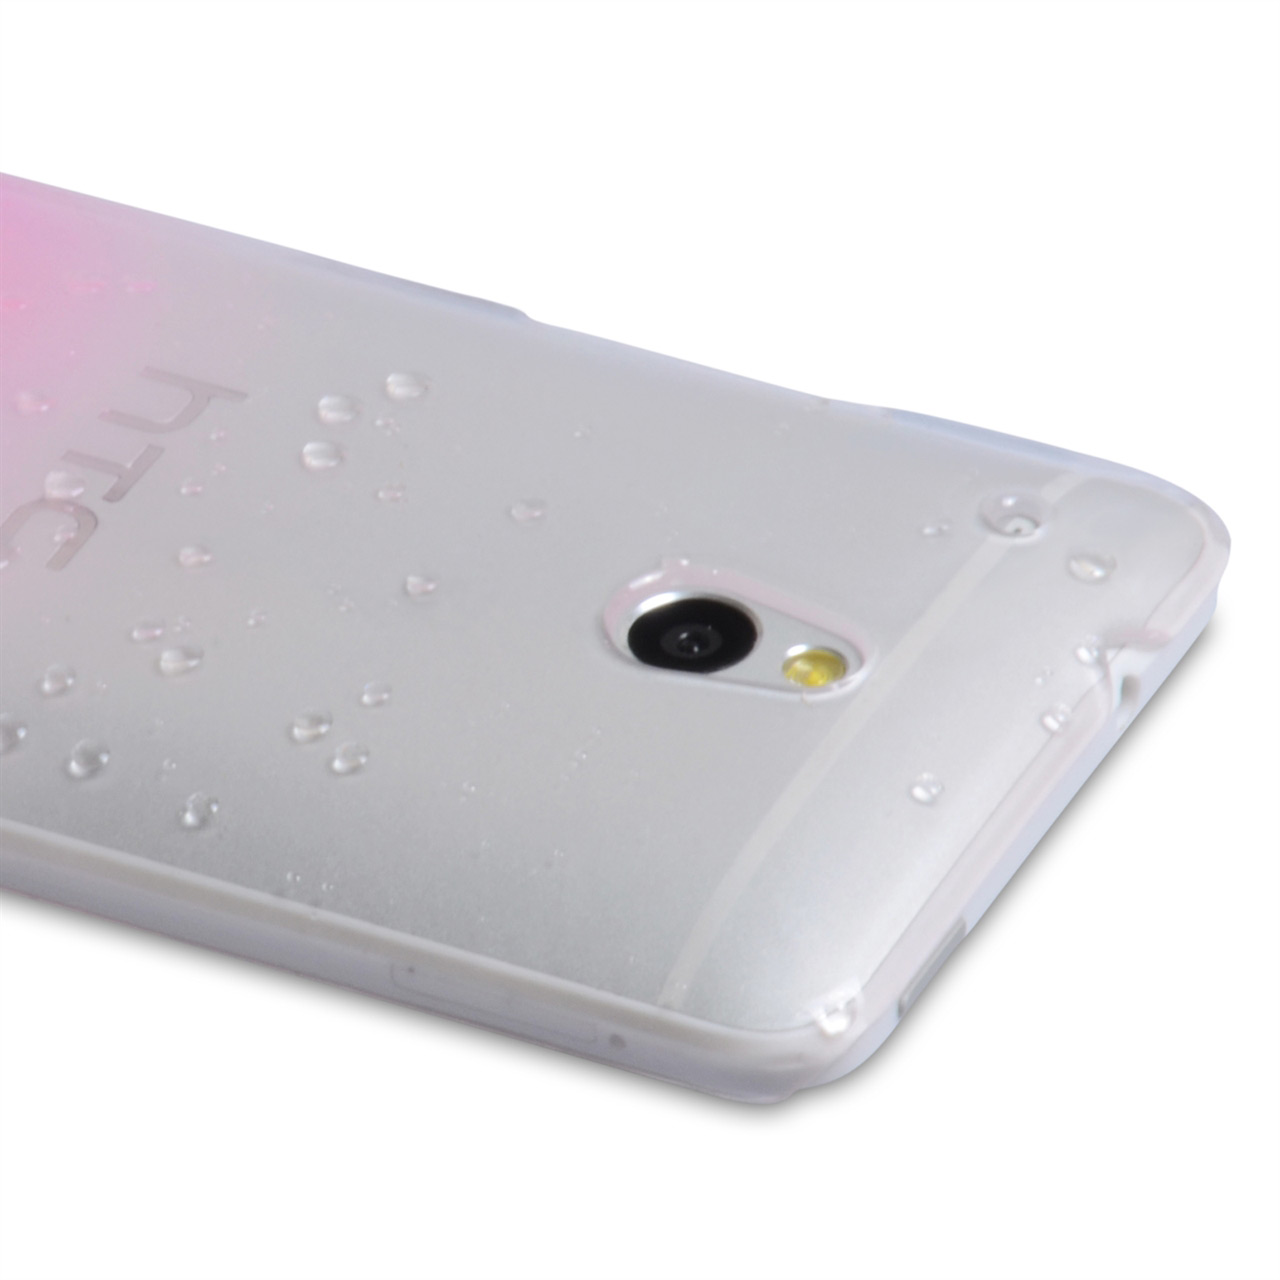 YouSave Accessories HTC ONE Mini Raindrop Hard Case - Baby Pink-Clear